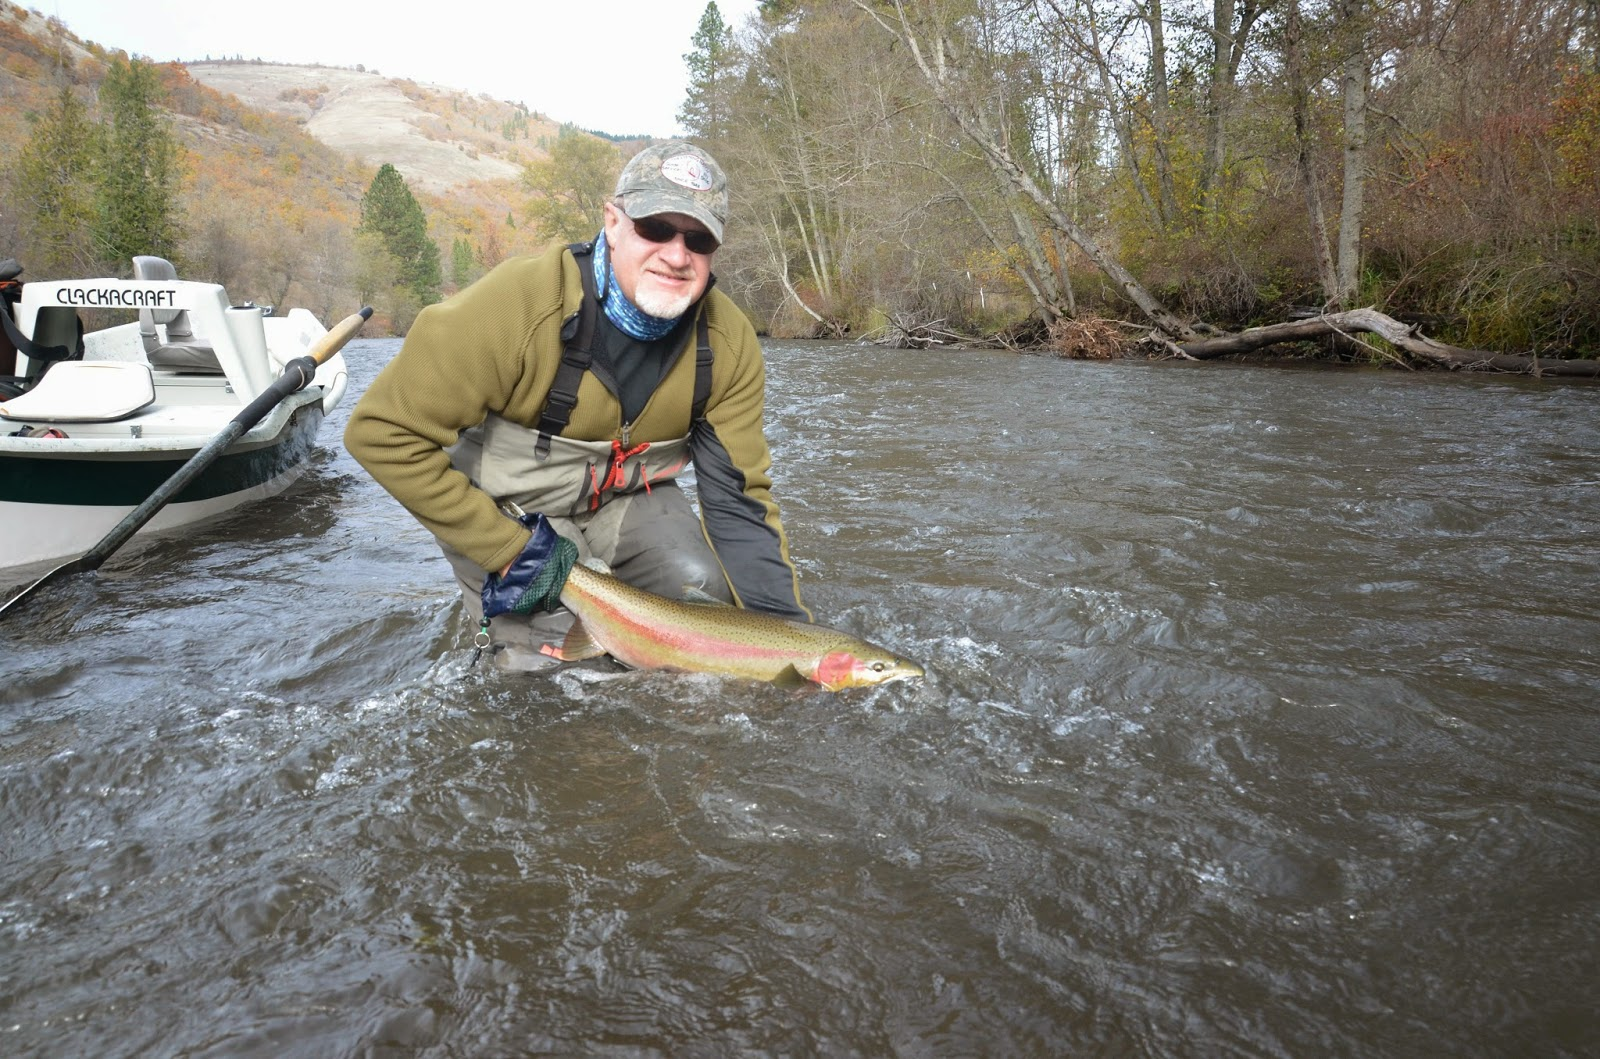 The evening hatch reports klickitat river report 11 8 14 for Klickitat river fishing report